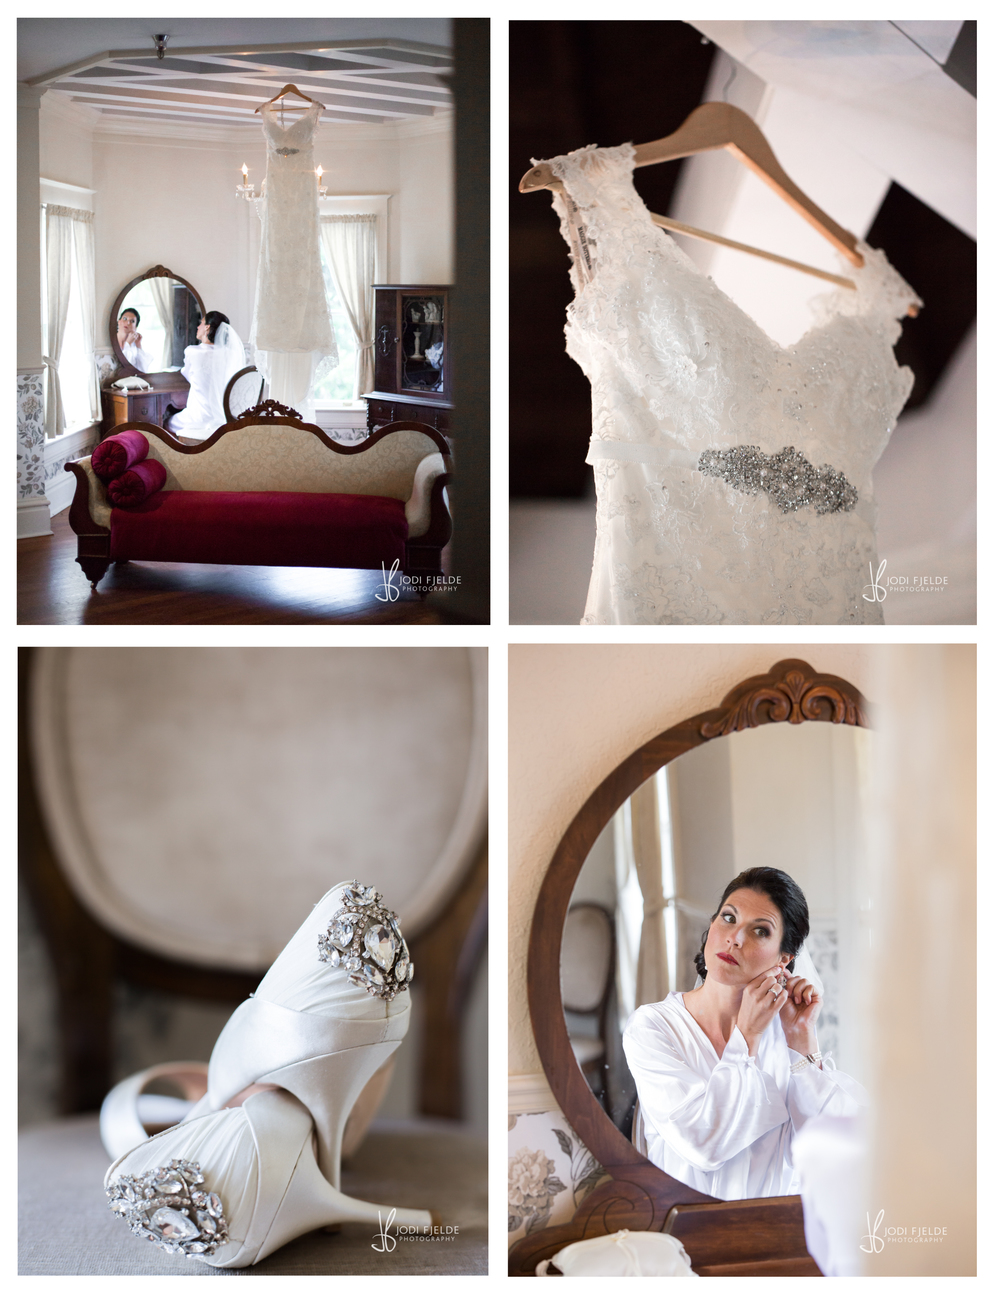 Highland_Manor_Apopka_Florida_wedding_Jackie_&_Tim_photography_jodi_Fjelde_photography-1.jpg